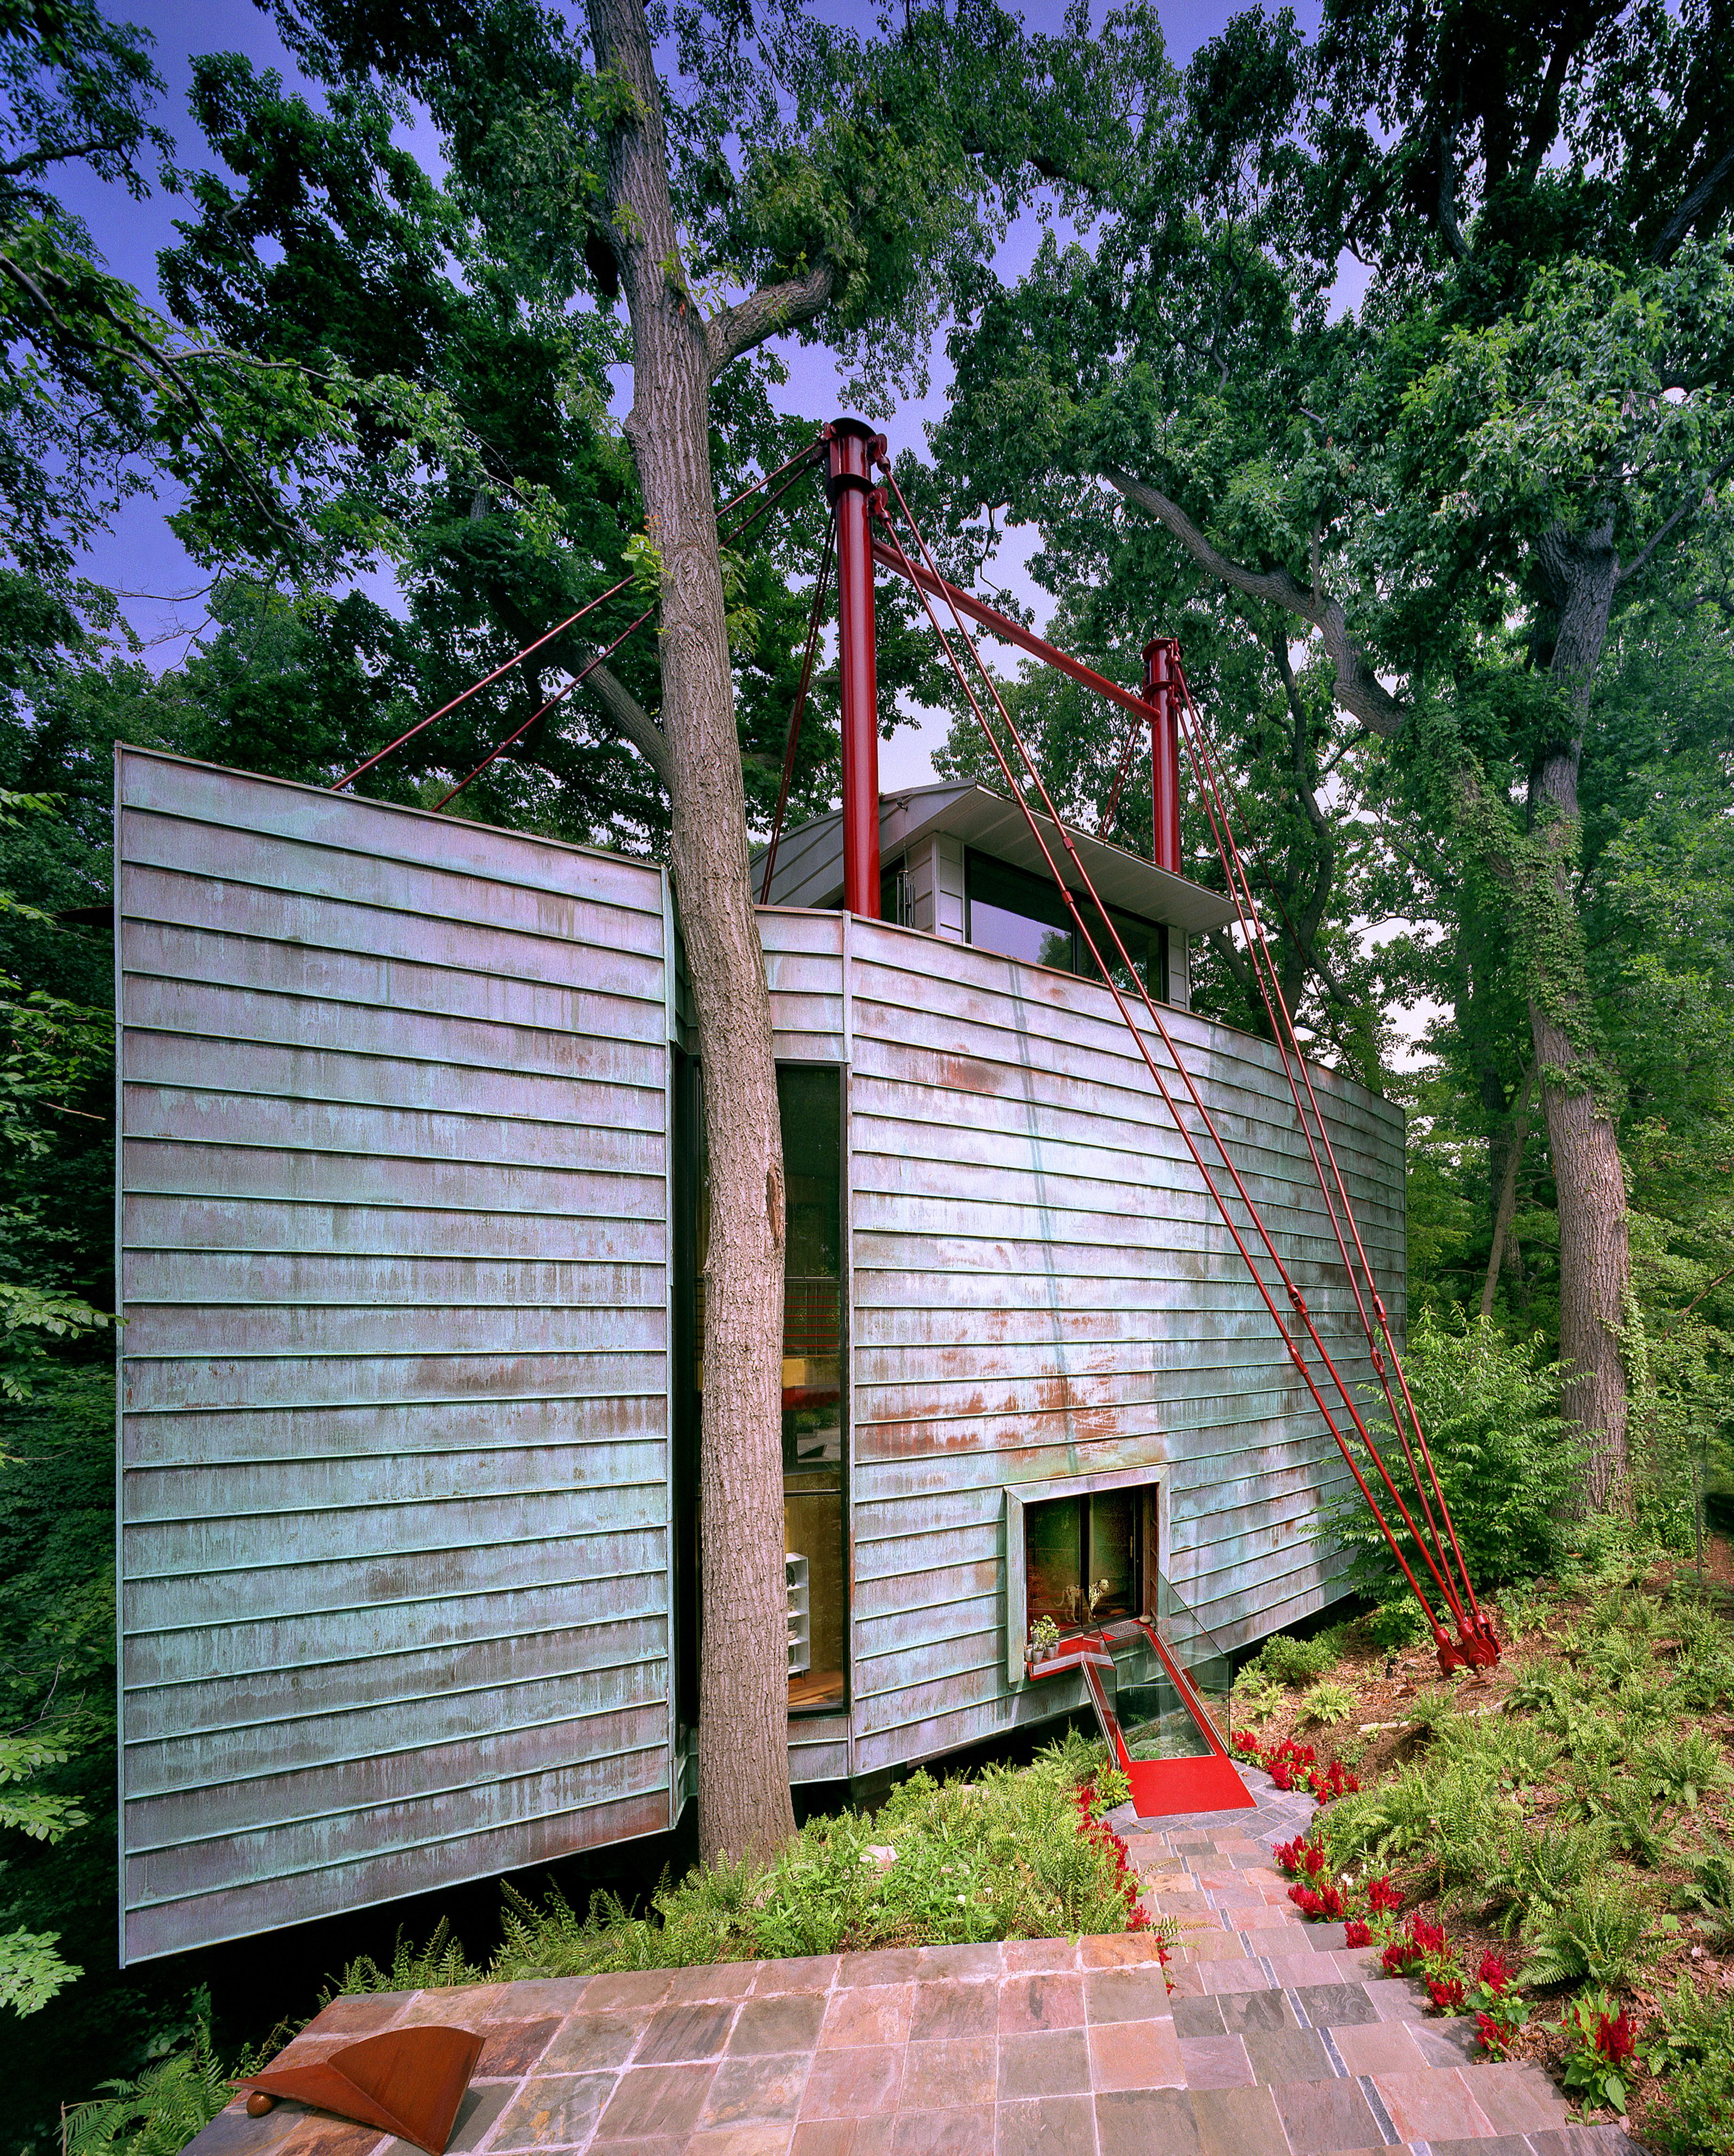 The home is inspired by the simple and natural virtues of the site's trees and rock outcroppings. An abundance of trees splitting rocks near a stream bed are the essences of the Park running through the center of D.C. The home is seen as an abstracted tree with a street side of patina copper planted on two columns at the cliff's edge hung by steel cables. The park side rear is clad with transparent super-insulated glazing. Trees are saved and wrap through the house. The design desires to blend into the park by its matching natural colors as well as its use of glass which reflectively display the preserved trees surrounding it. (Image: Ken Wyner)<p></p>